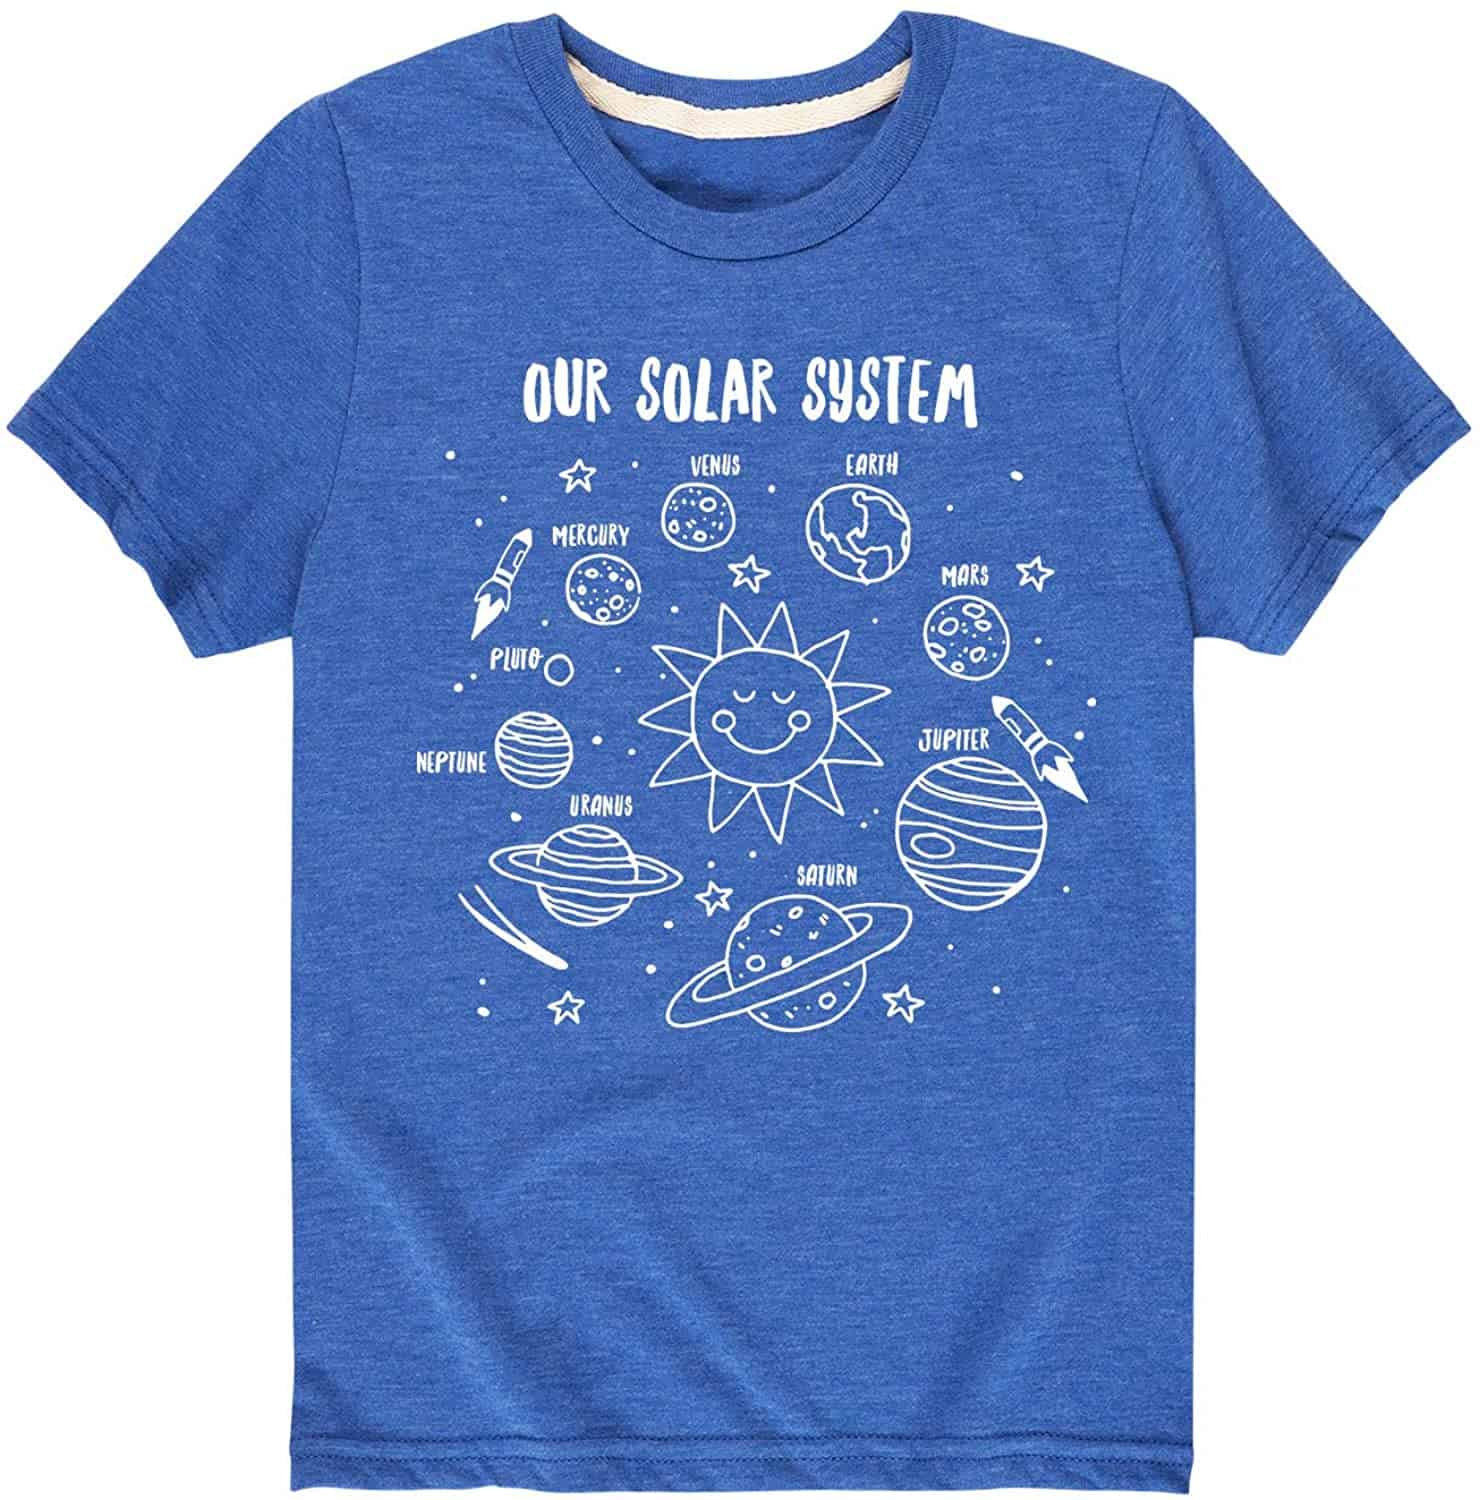 Our Solar System - Toddler Short Sleeve Tee